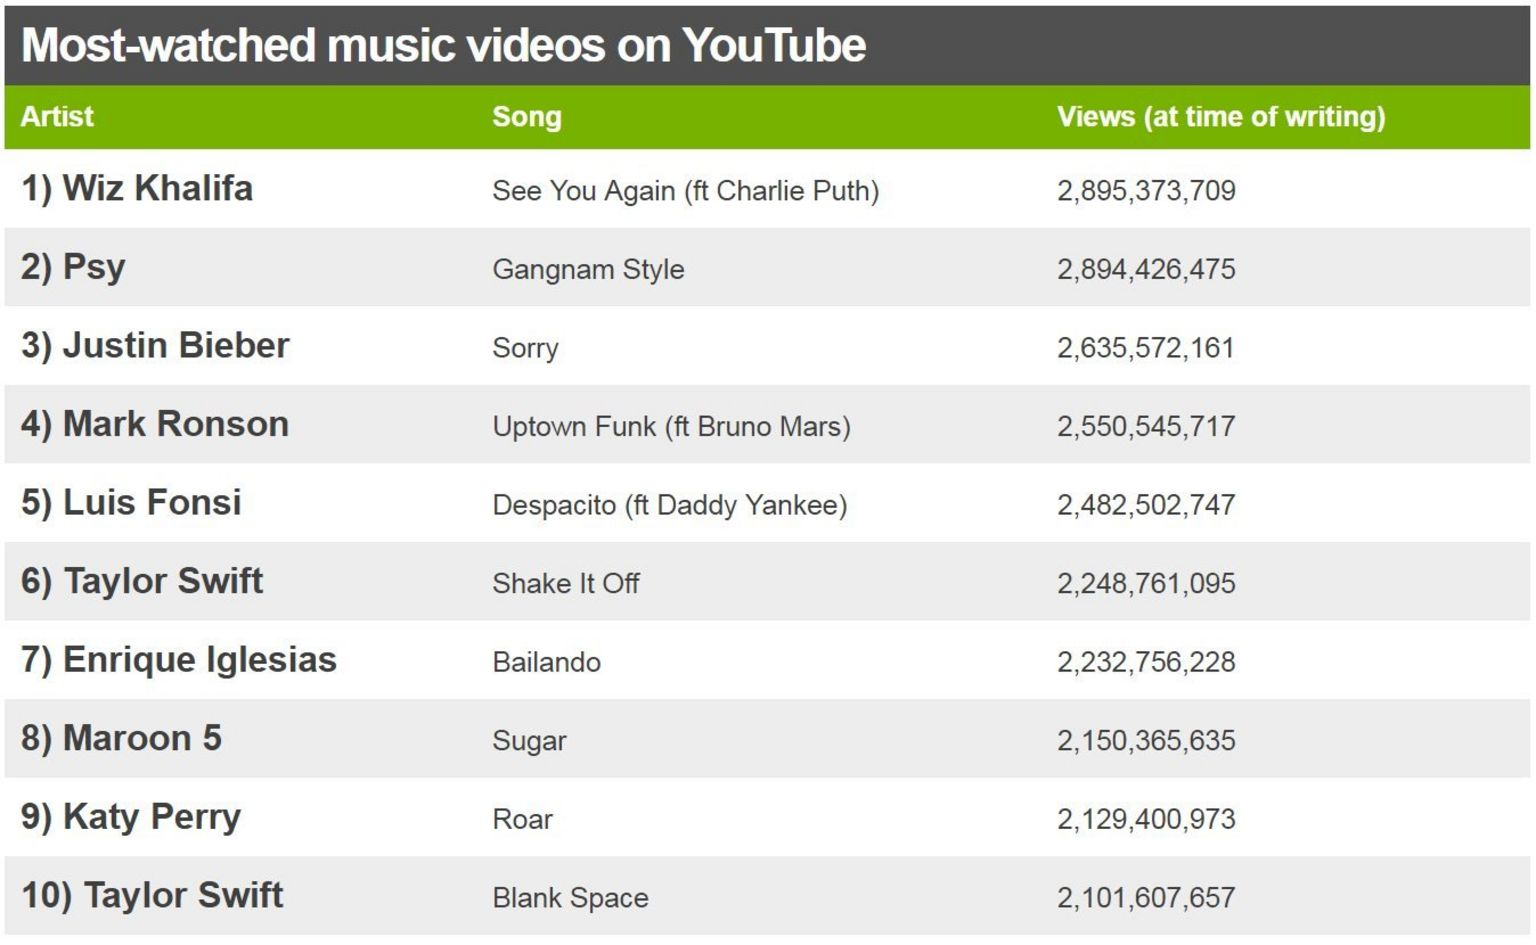 A chart of YouTube's most-watched music videos